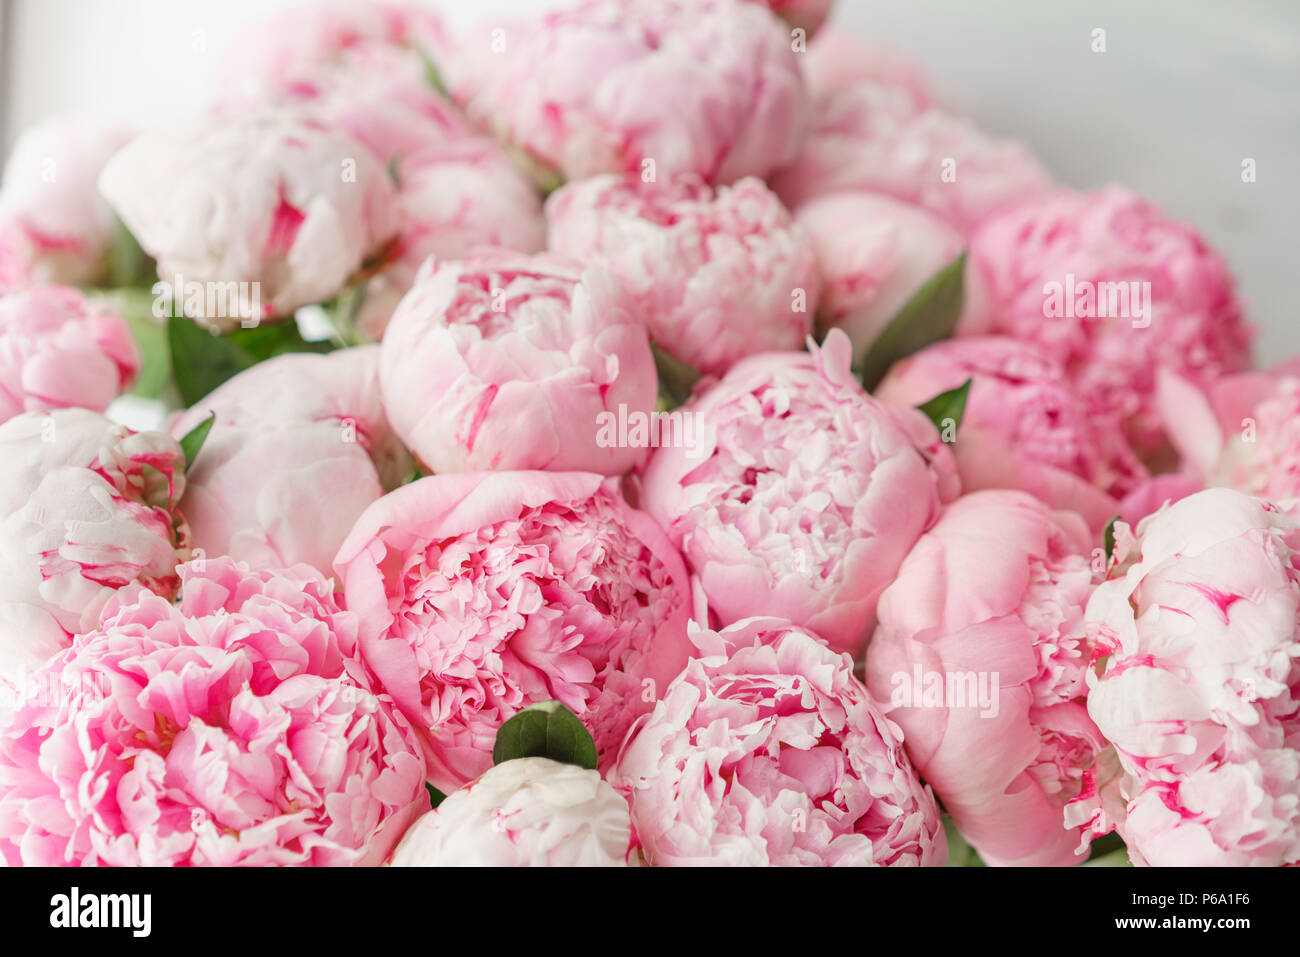 Beautiful Bouquet Of Pink Peonies Floral Composition Daylight